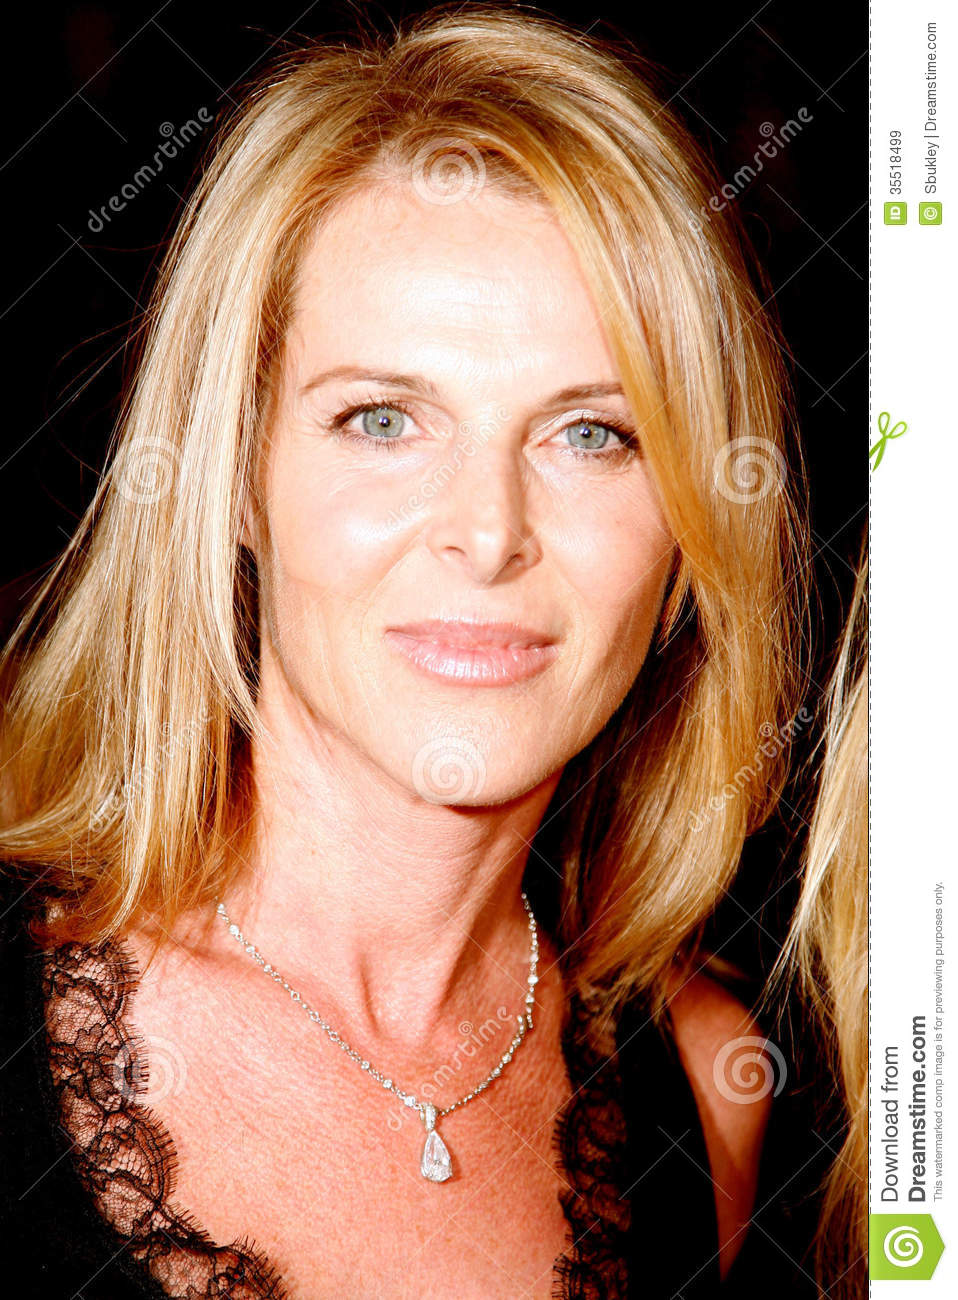 catherine oxenberg 2014catherine oxenberg pictures, catherine oxenberg instagram, catherine oxenberg, catherine oxenberg photos, catherine oxenberg 2014, catherine oxenberg dynasty, catherine oxenberg net worth, catherine oxenberg imdb, catherine oxenberg and casper van dien, catherine oxenberg royal wedding, catherine oxenberg sexology, catherine oxenberg heute, catherine oxenberg time served, catherine oxenberg hot, catherine oxenberg divorce, catherine oxenberg movies